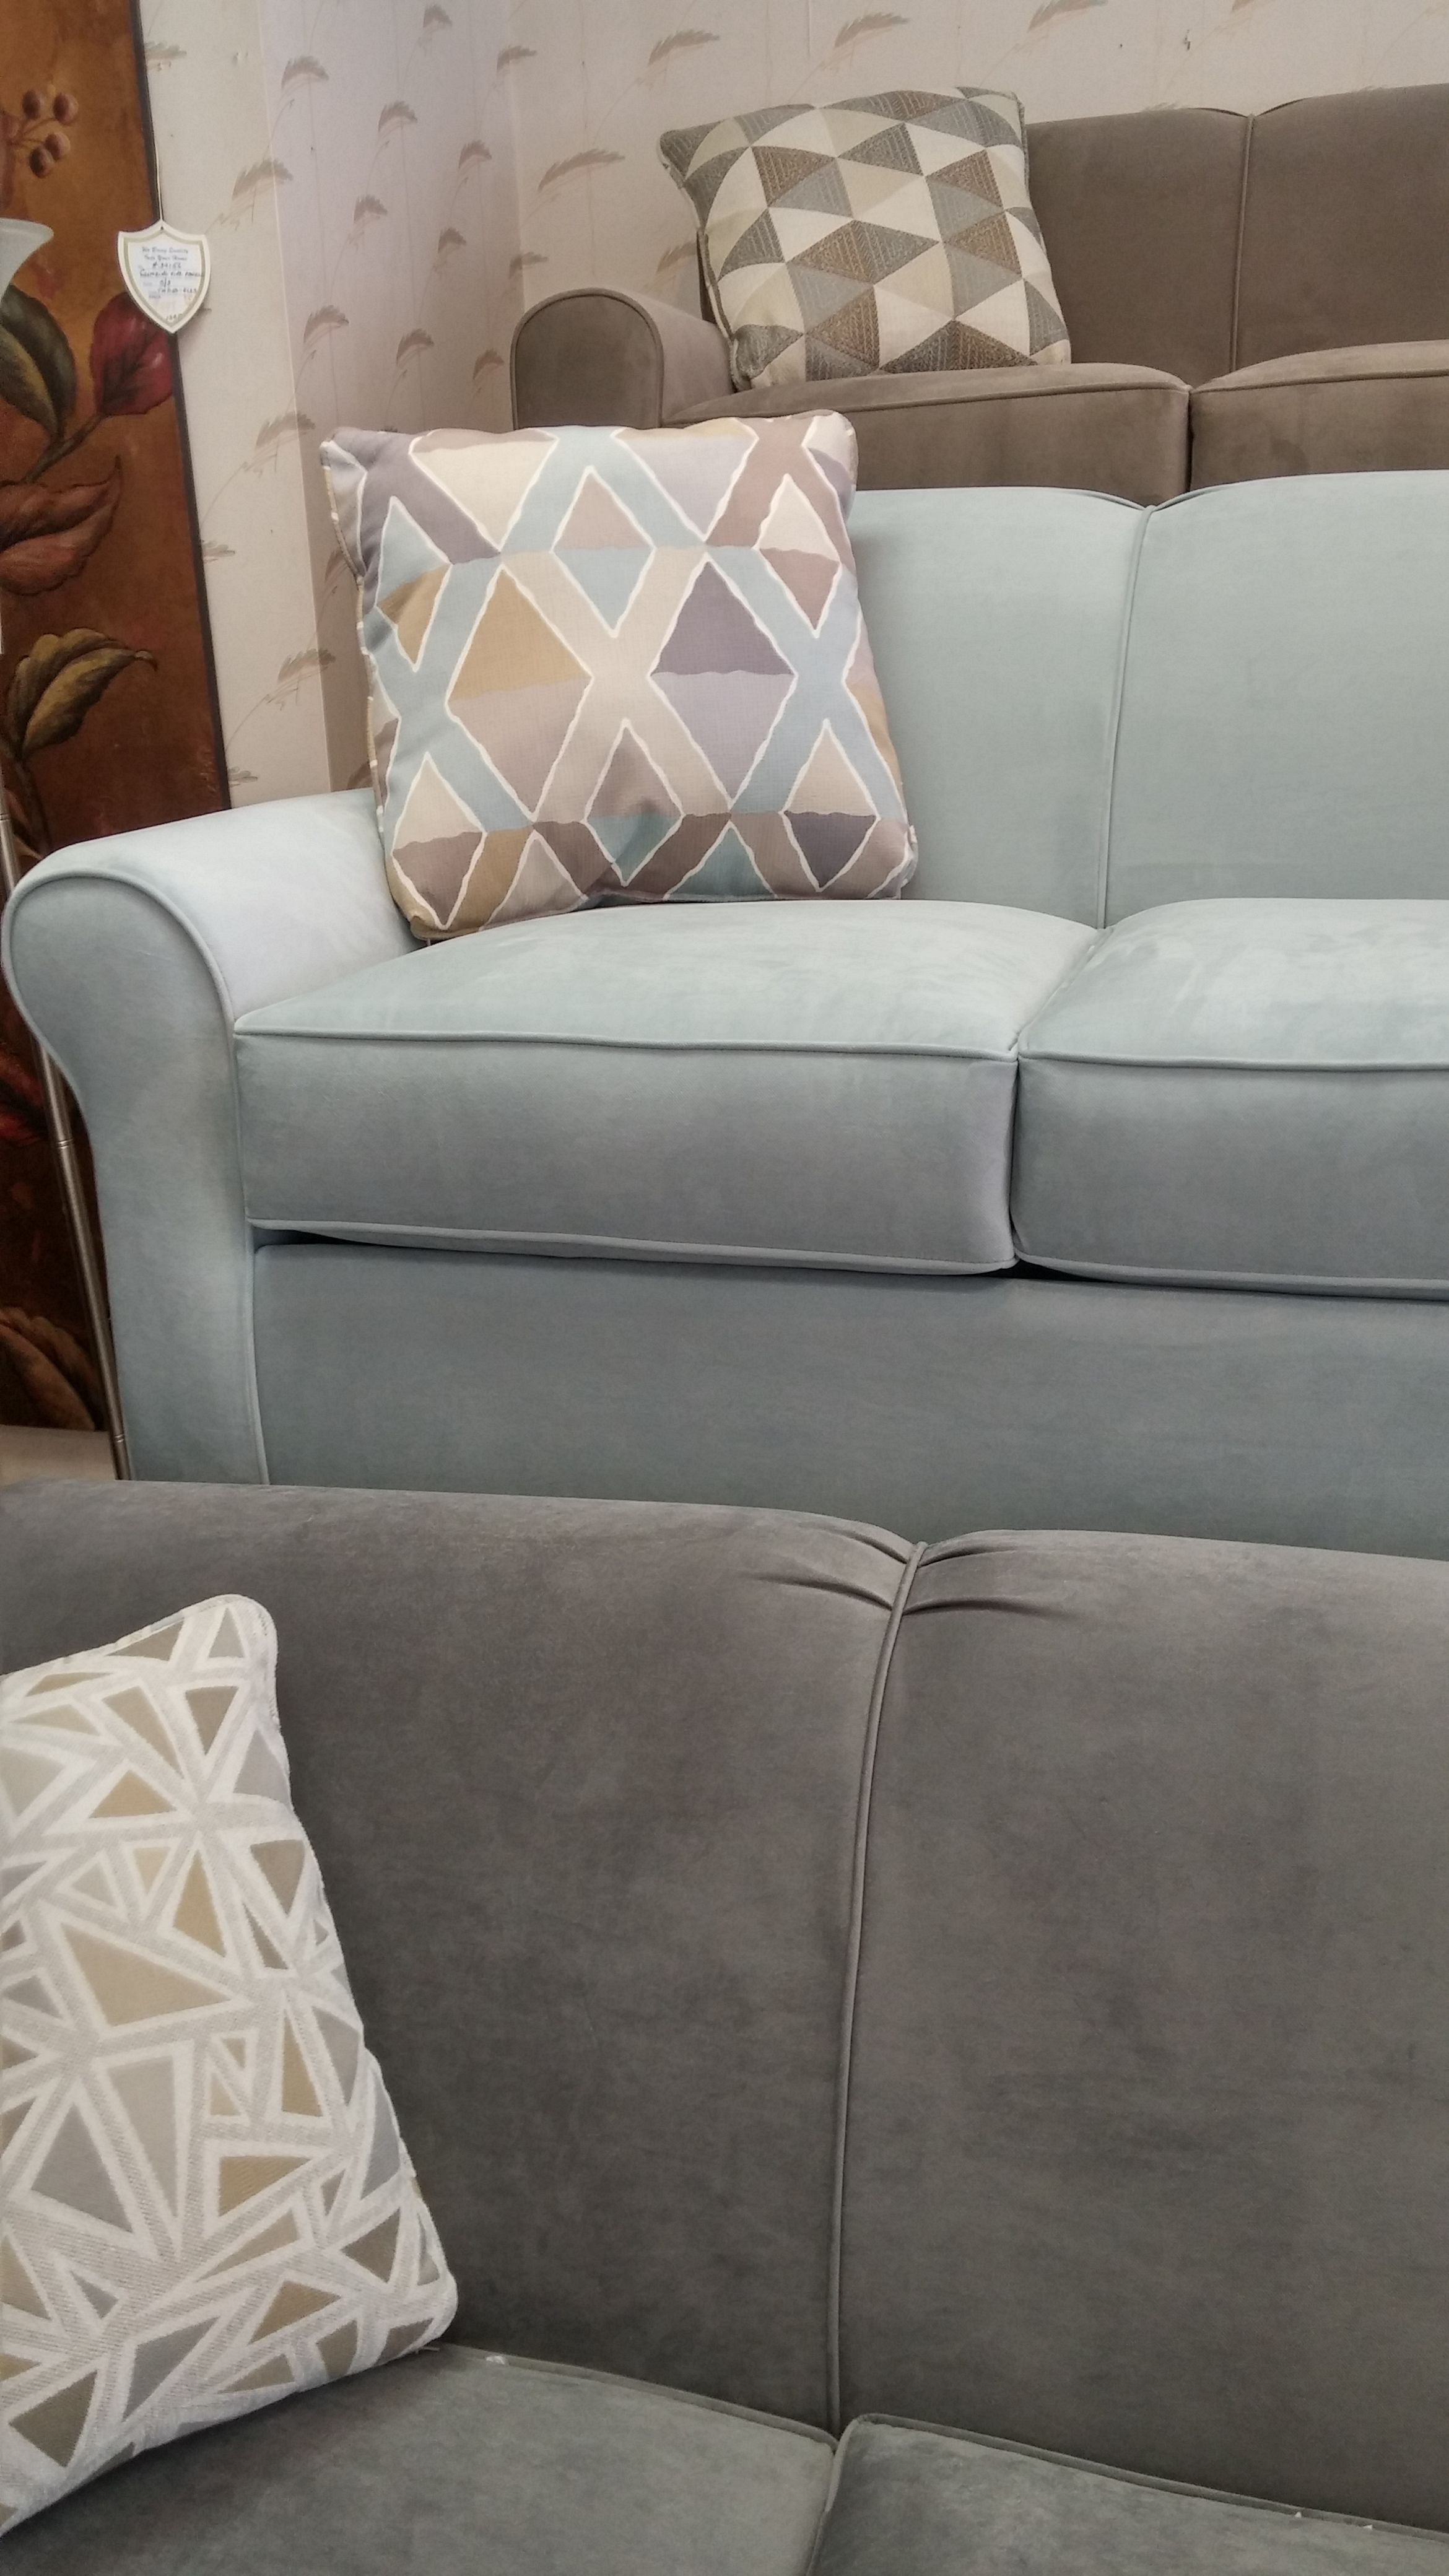 Come Check Out Our New Sleeper Sofa Additions From Klaussner